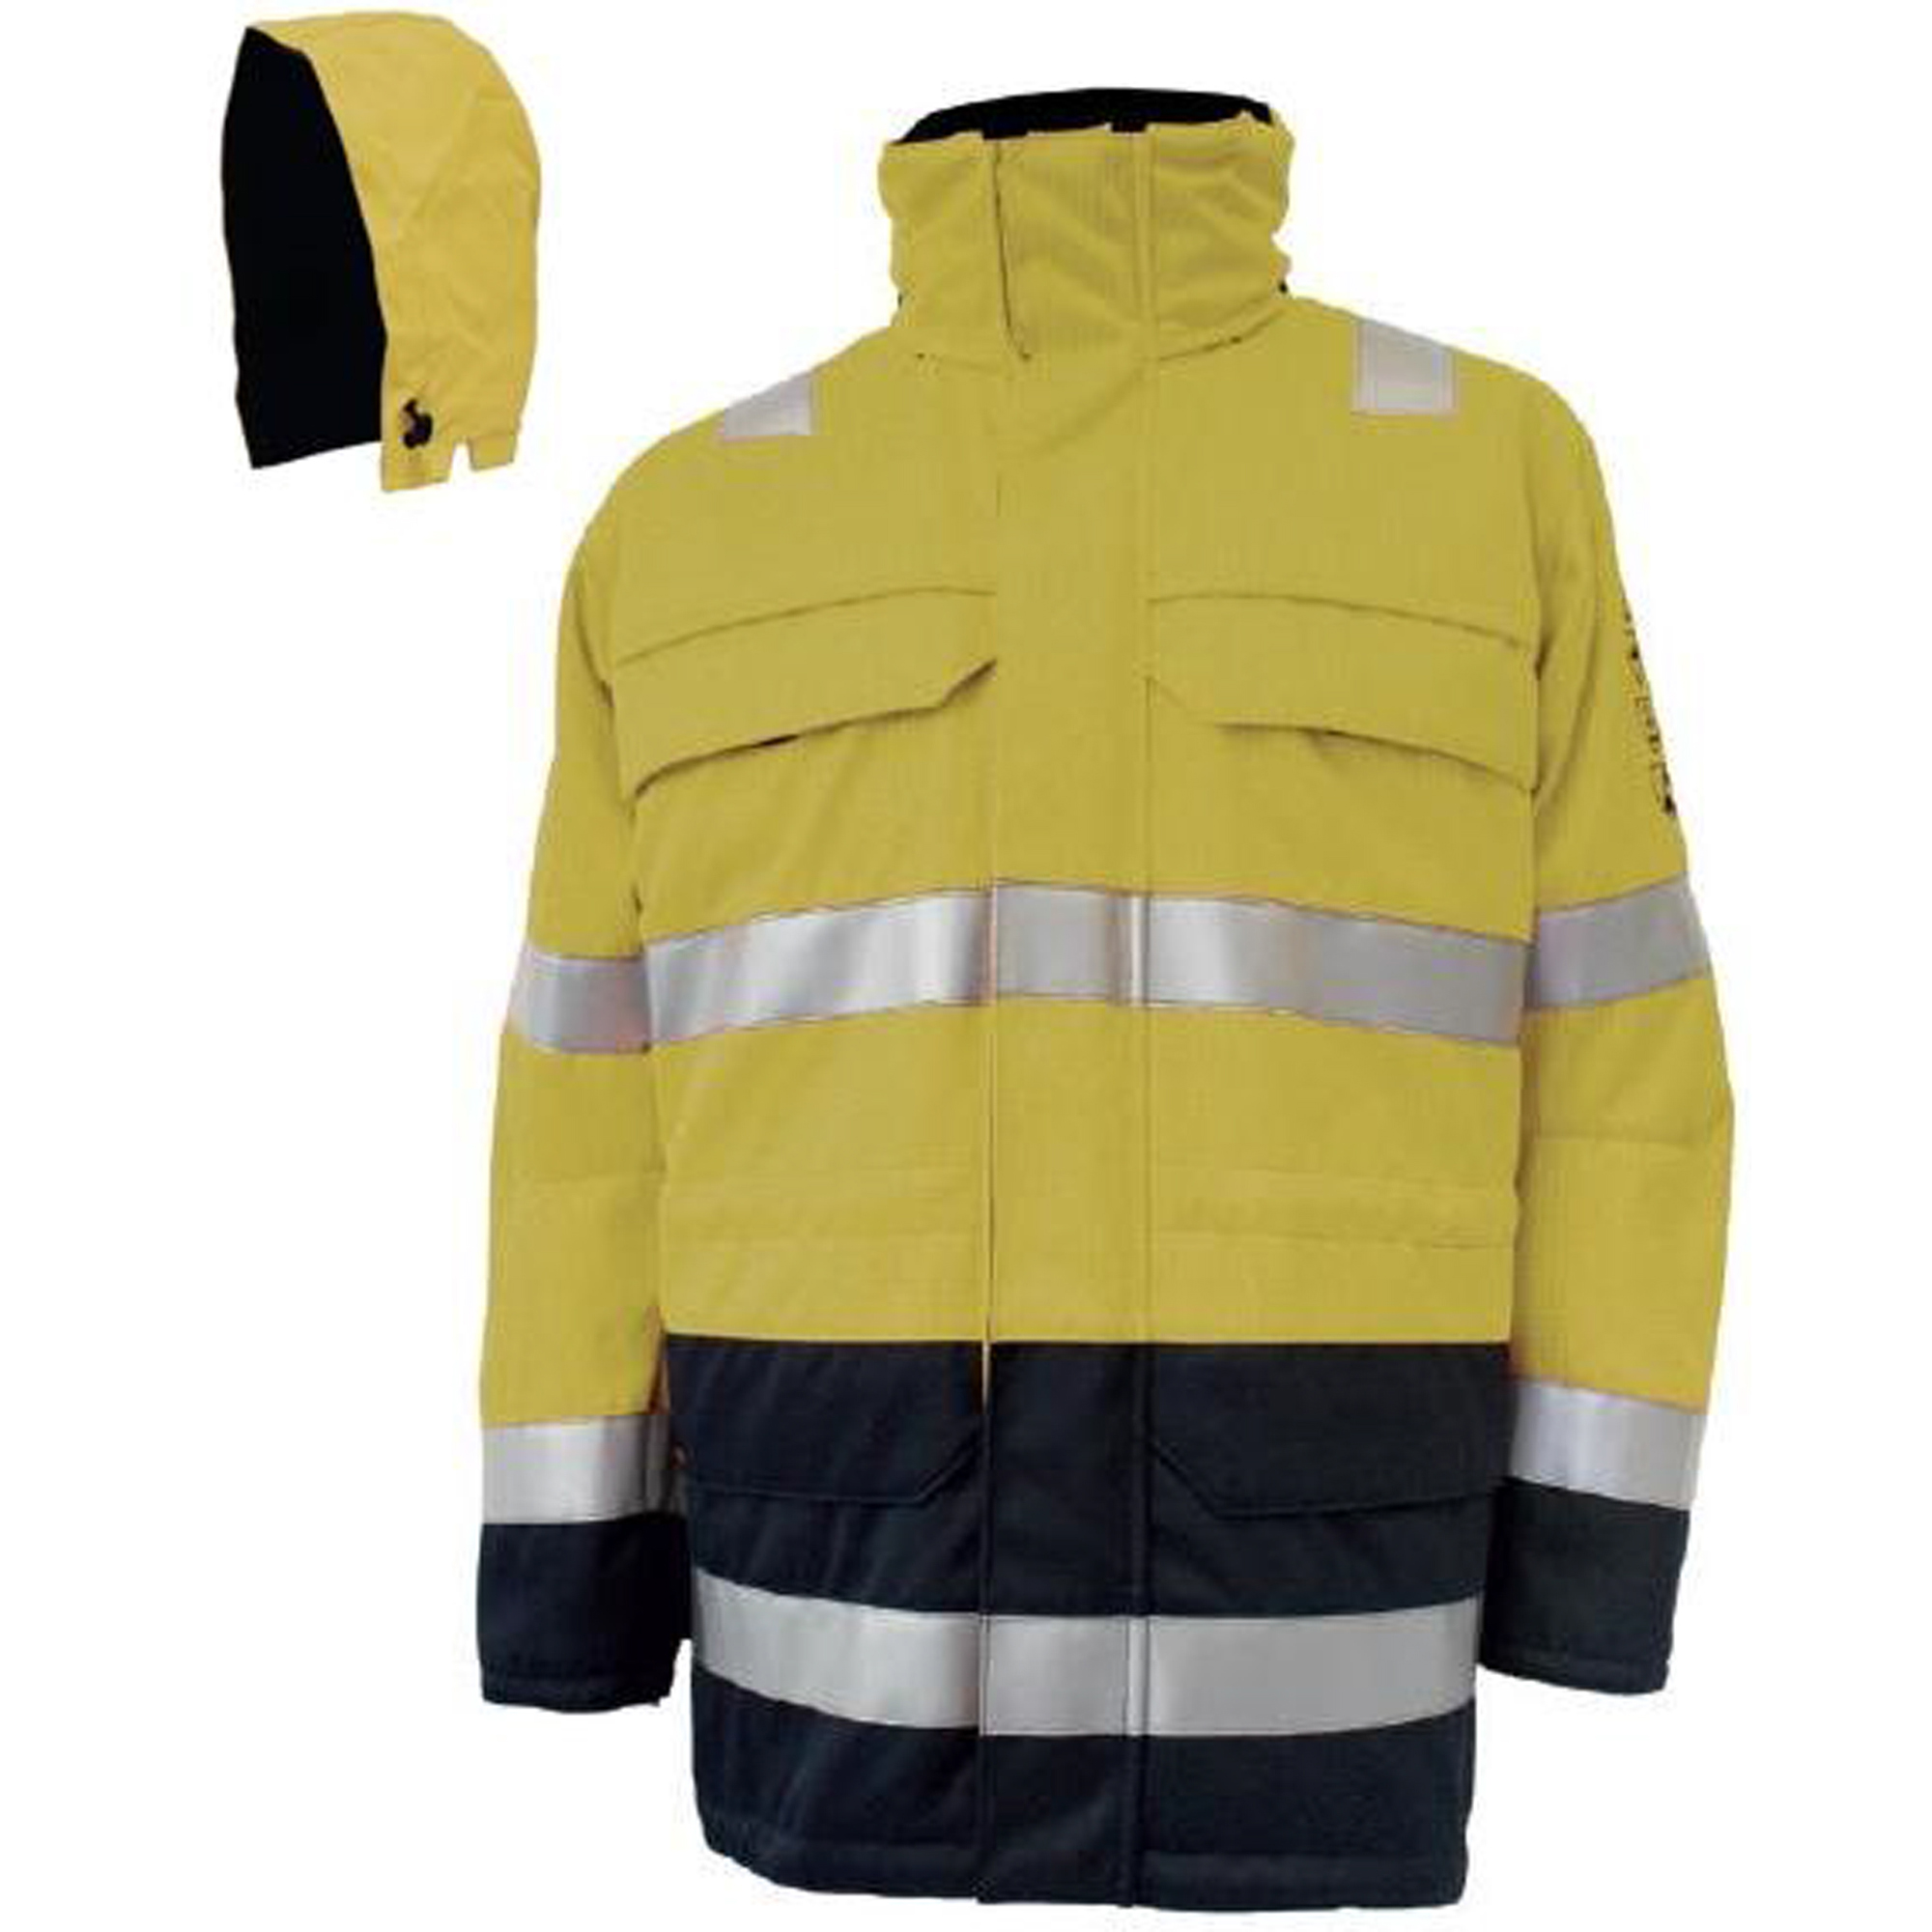 BSD SHINE ARC FLASH PARKA JACKET AND HOOD - CLASS 2 (318 KJ)